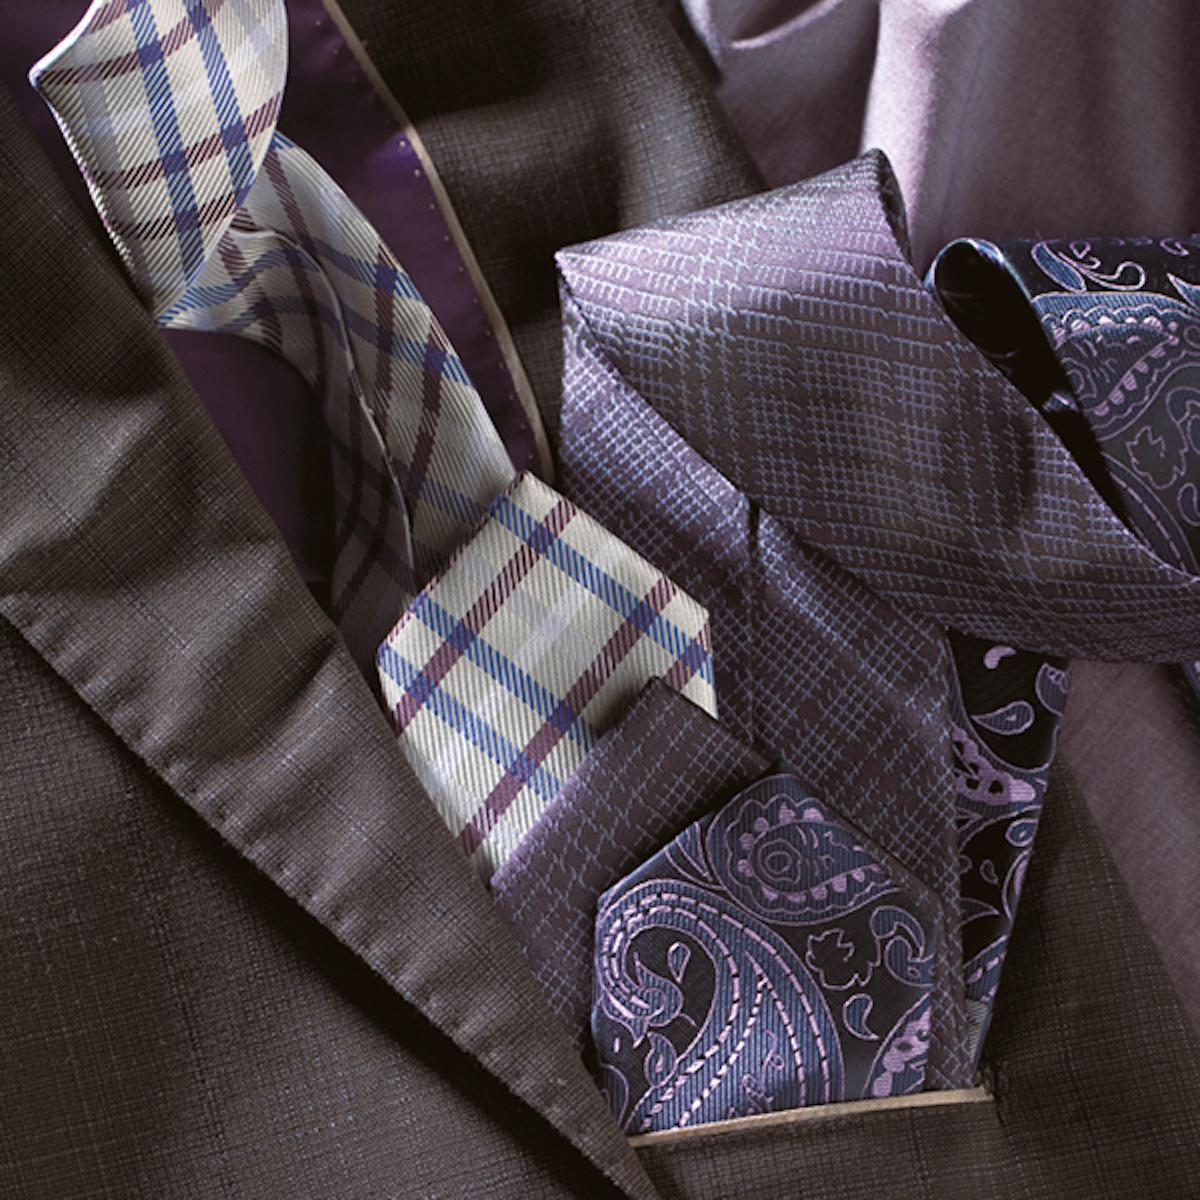 Win-win combination of grey blazer and squared or violet patterned tie